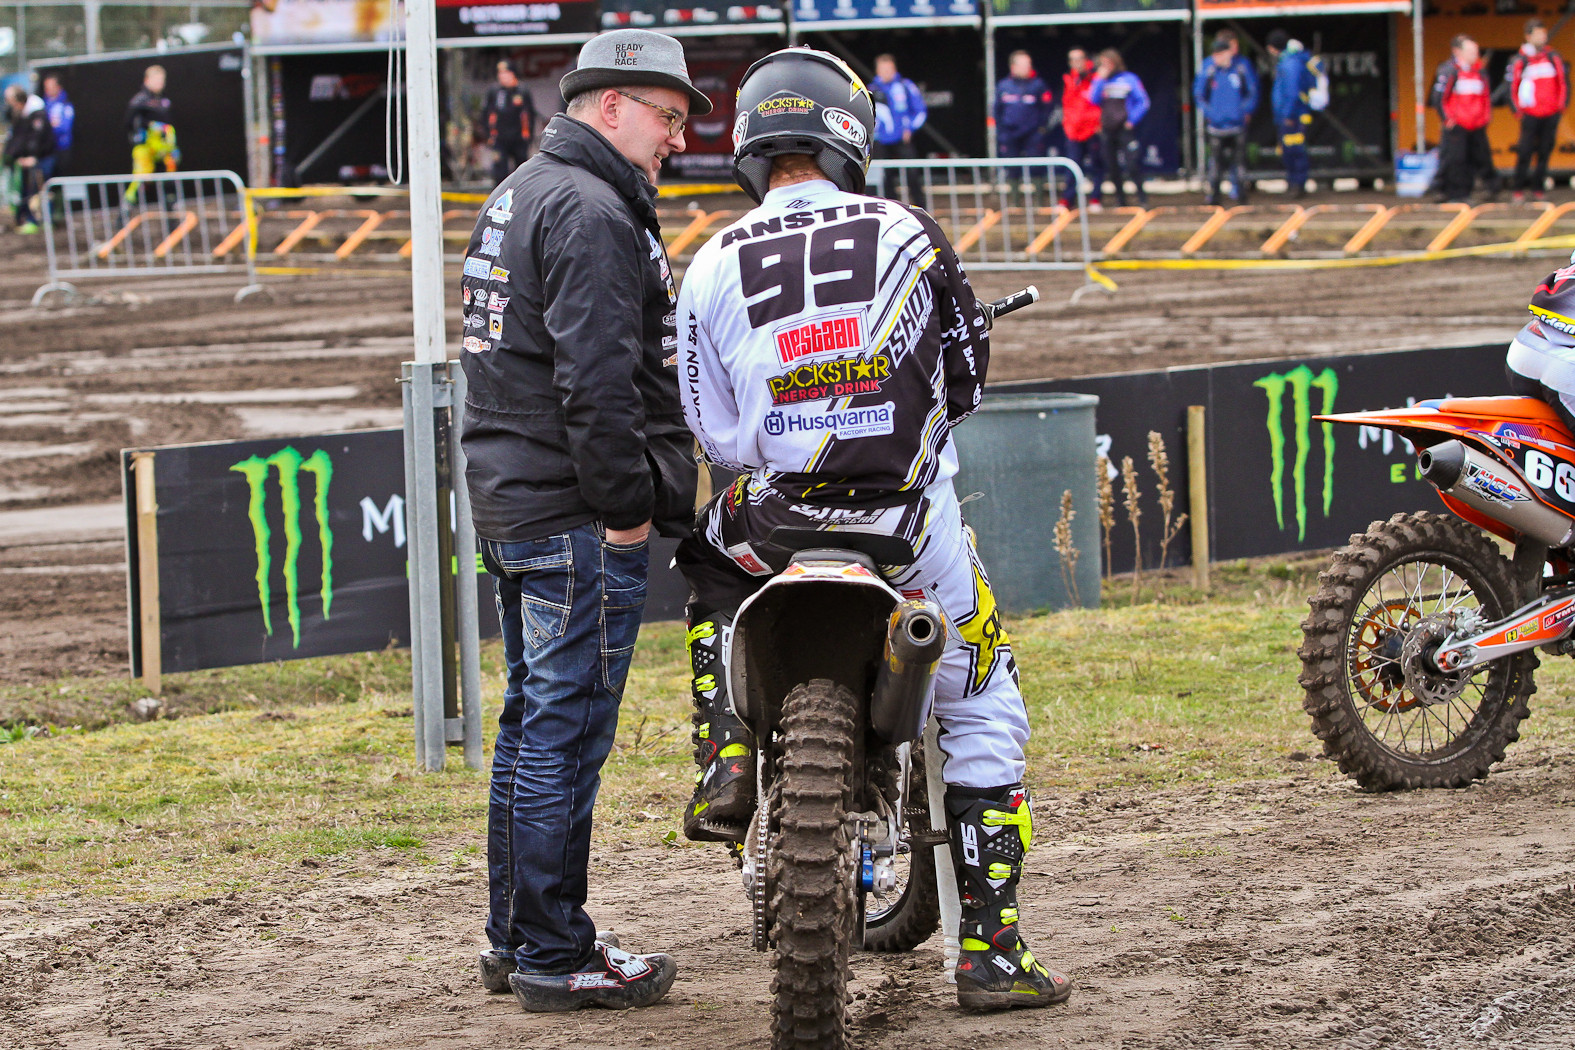 Max Anstie - In the Pits: MXGP of Europe - Motocross Pictures - Vital MX